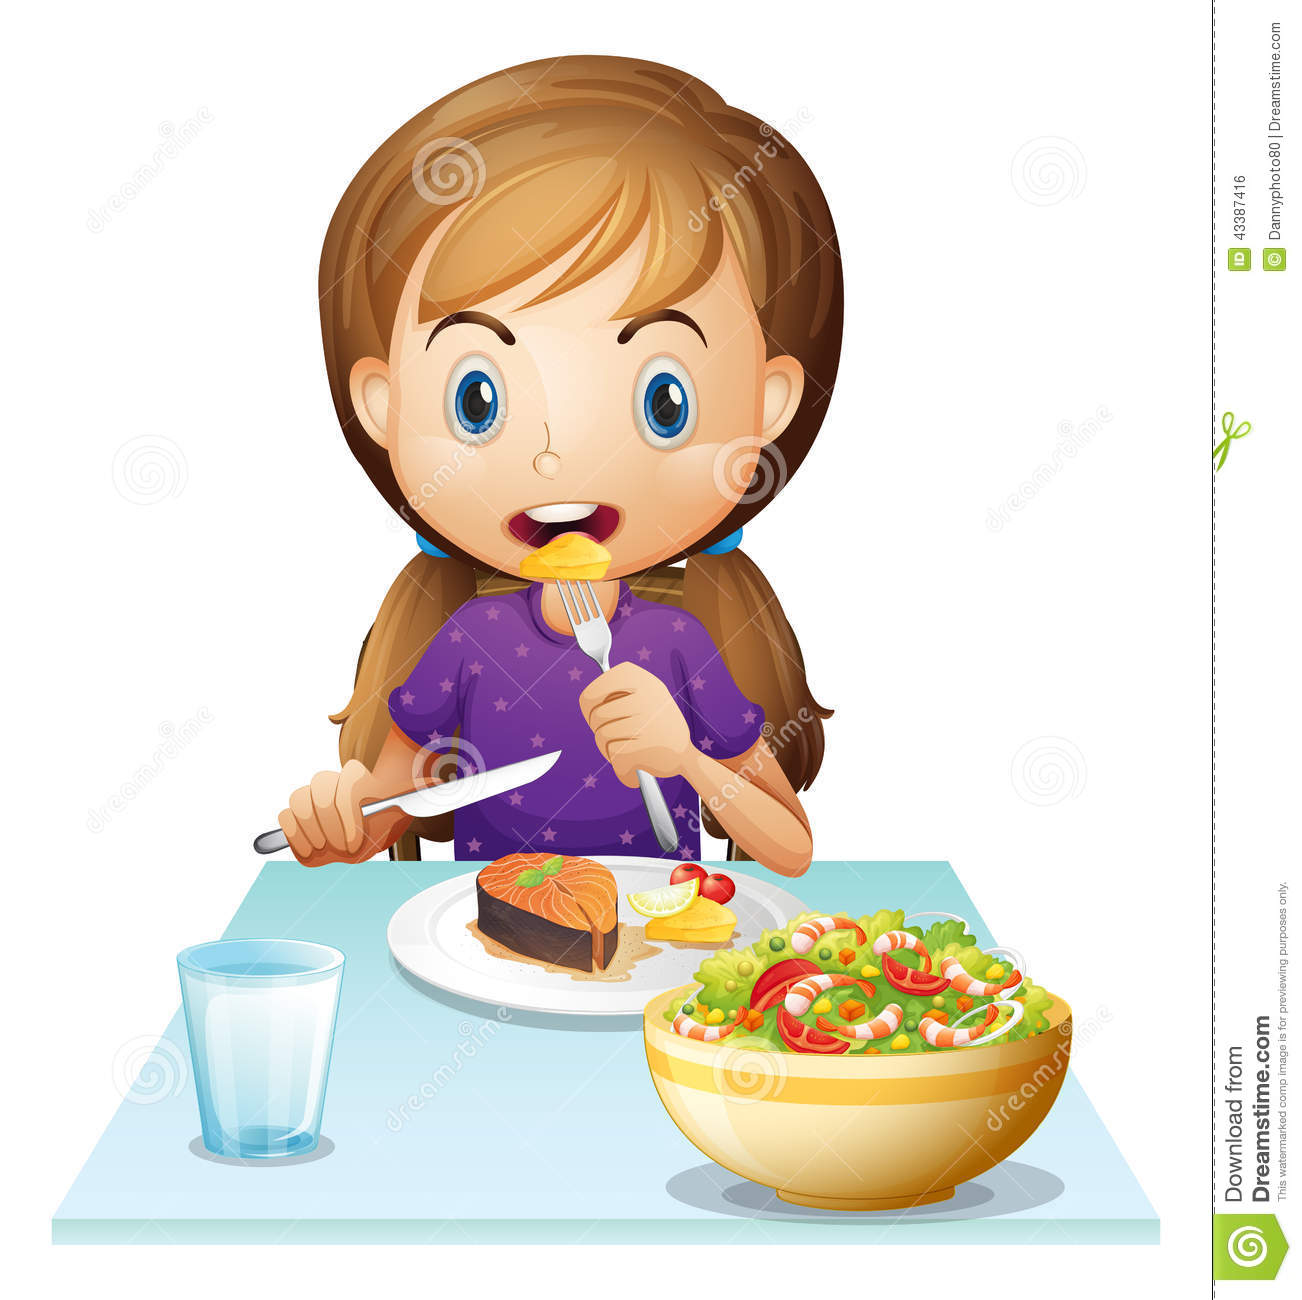 clipart girl eating breakfast - photo #17